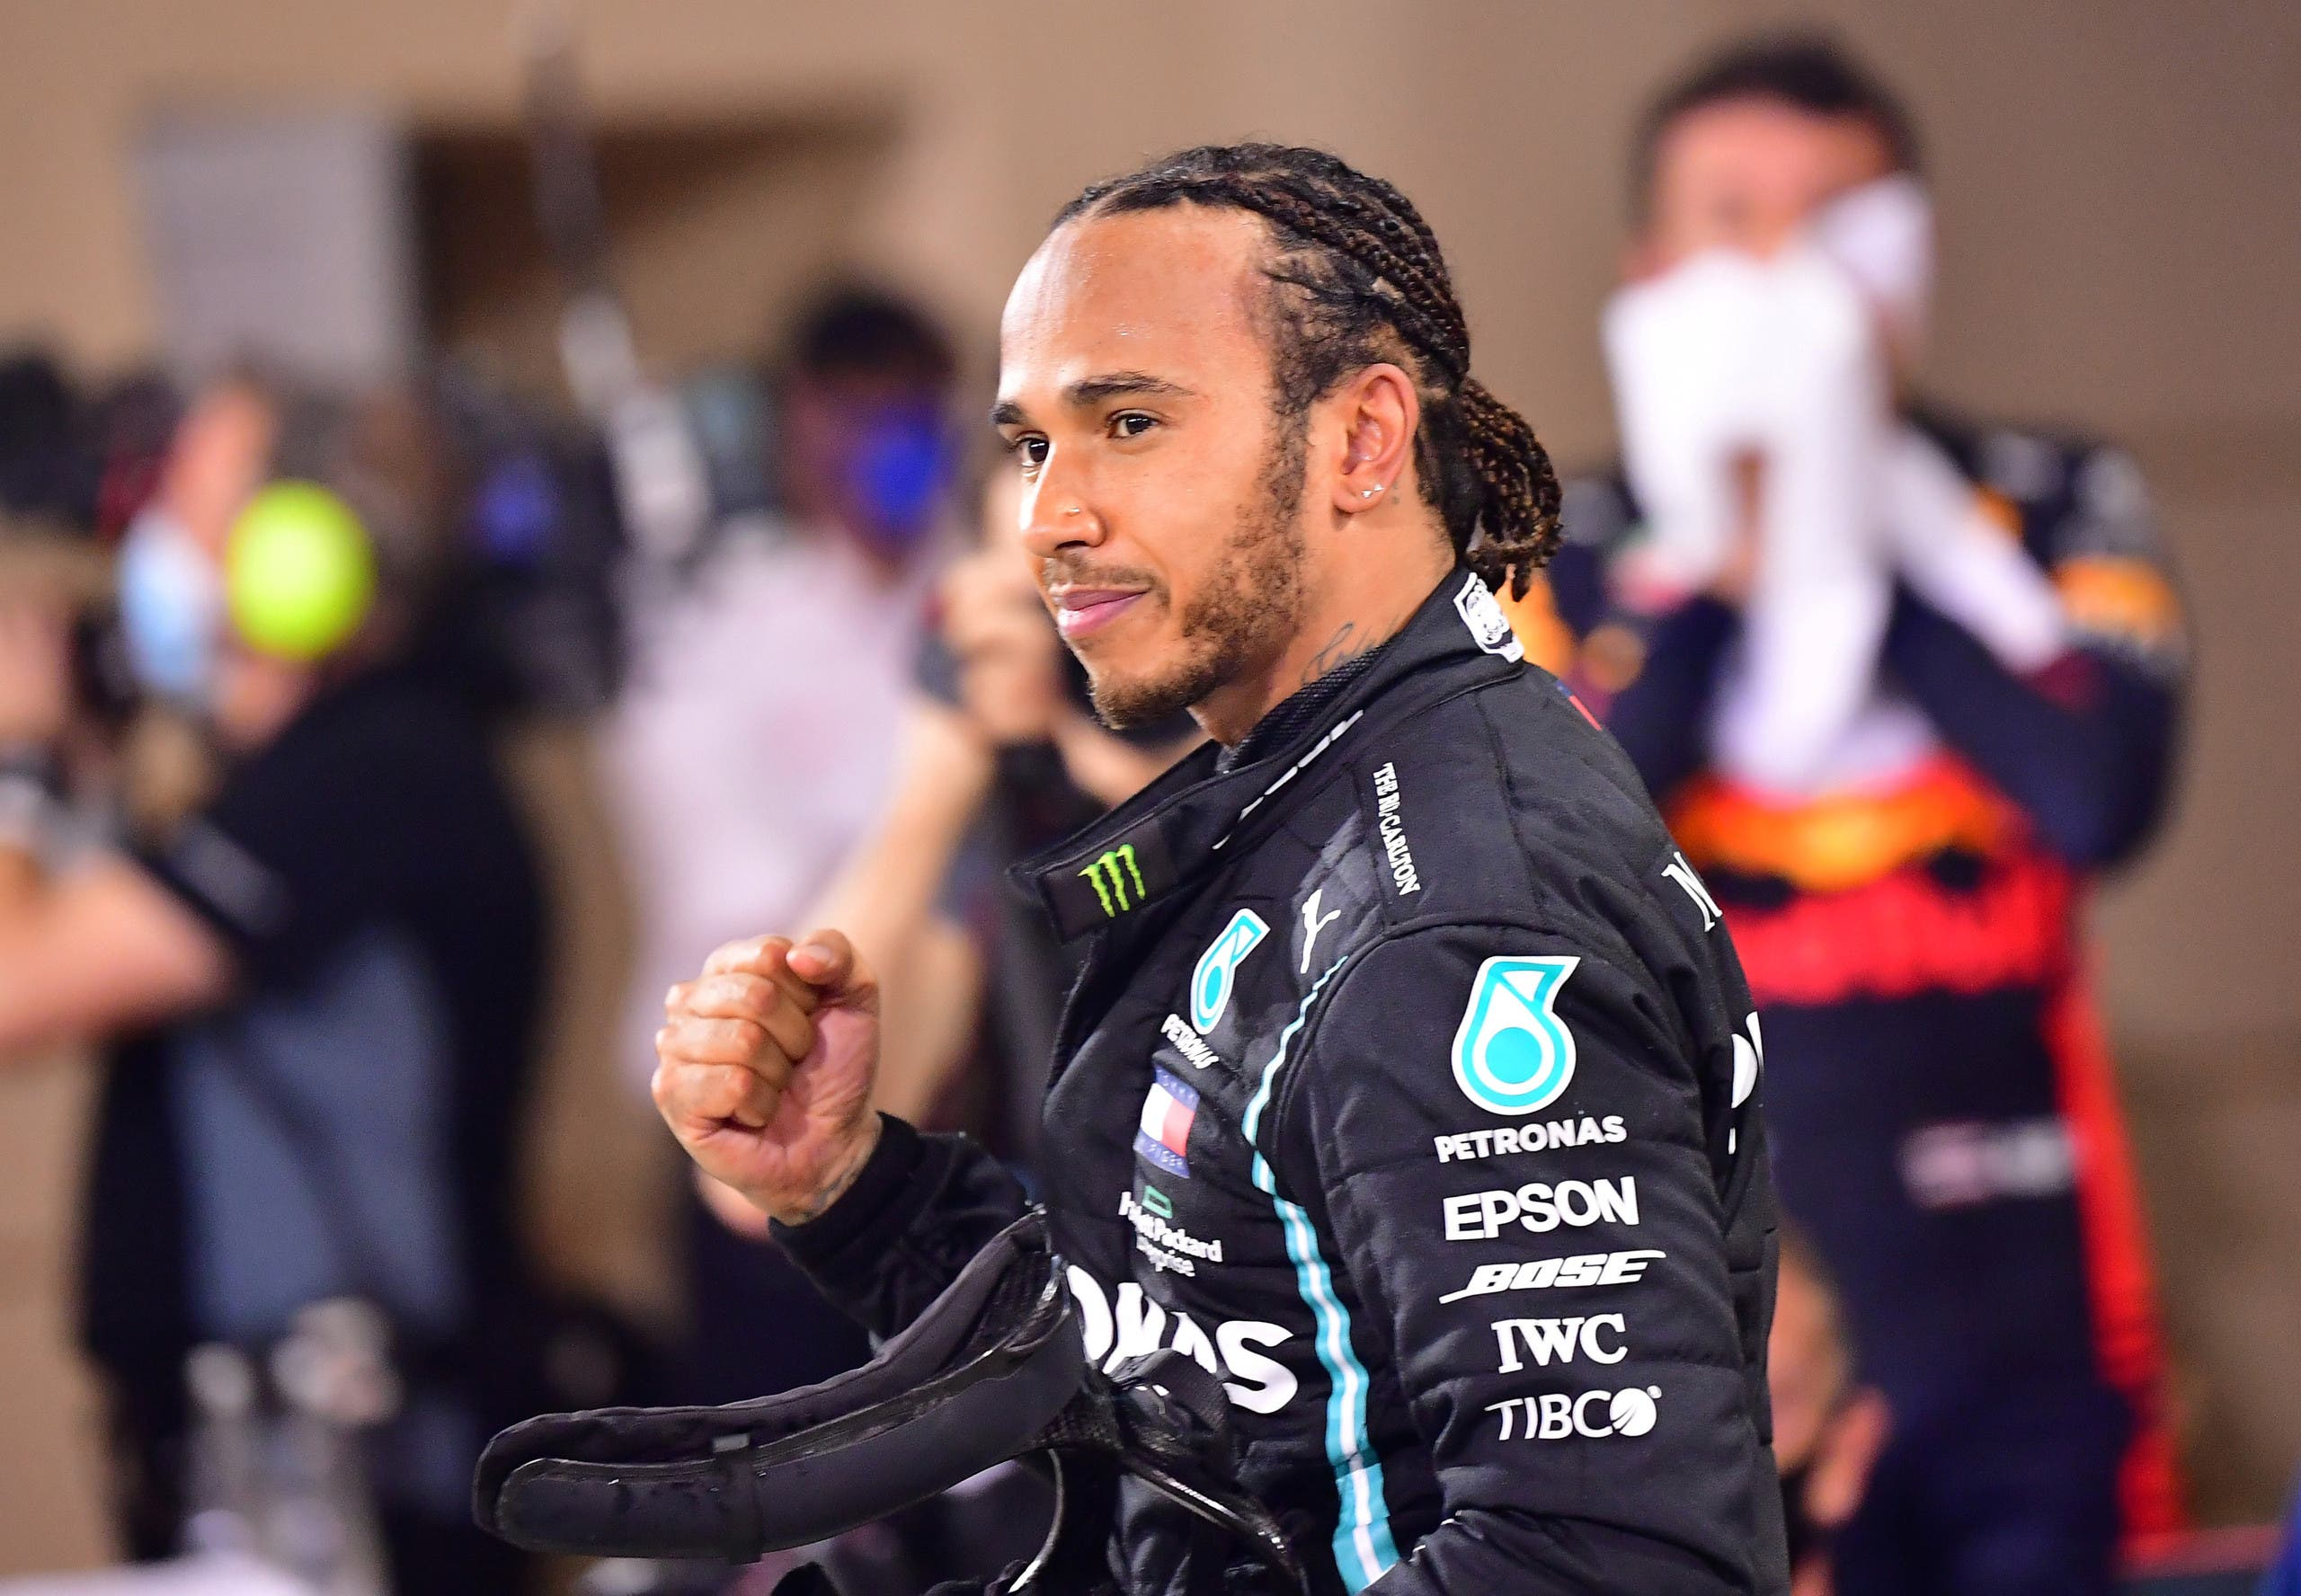 Mercedes' Lewis Hamilton celebrates after winning the race Pool during Bahrain Grand Prix on November 29, 2020. (File photo: Reuters)